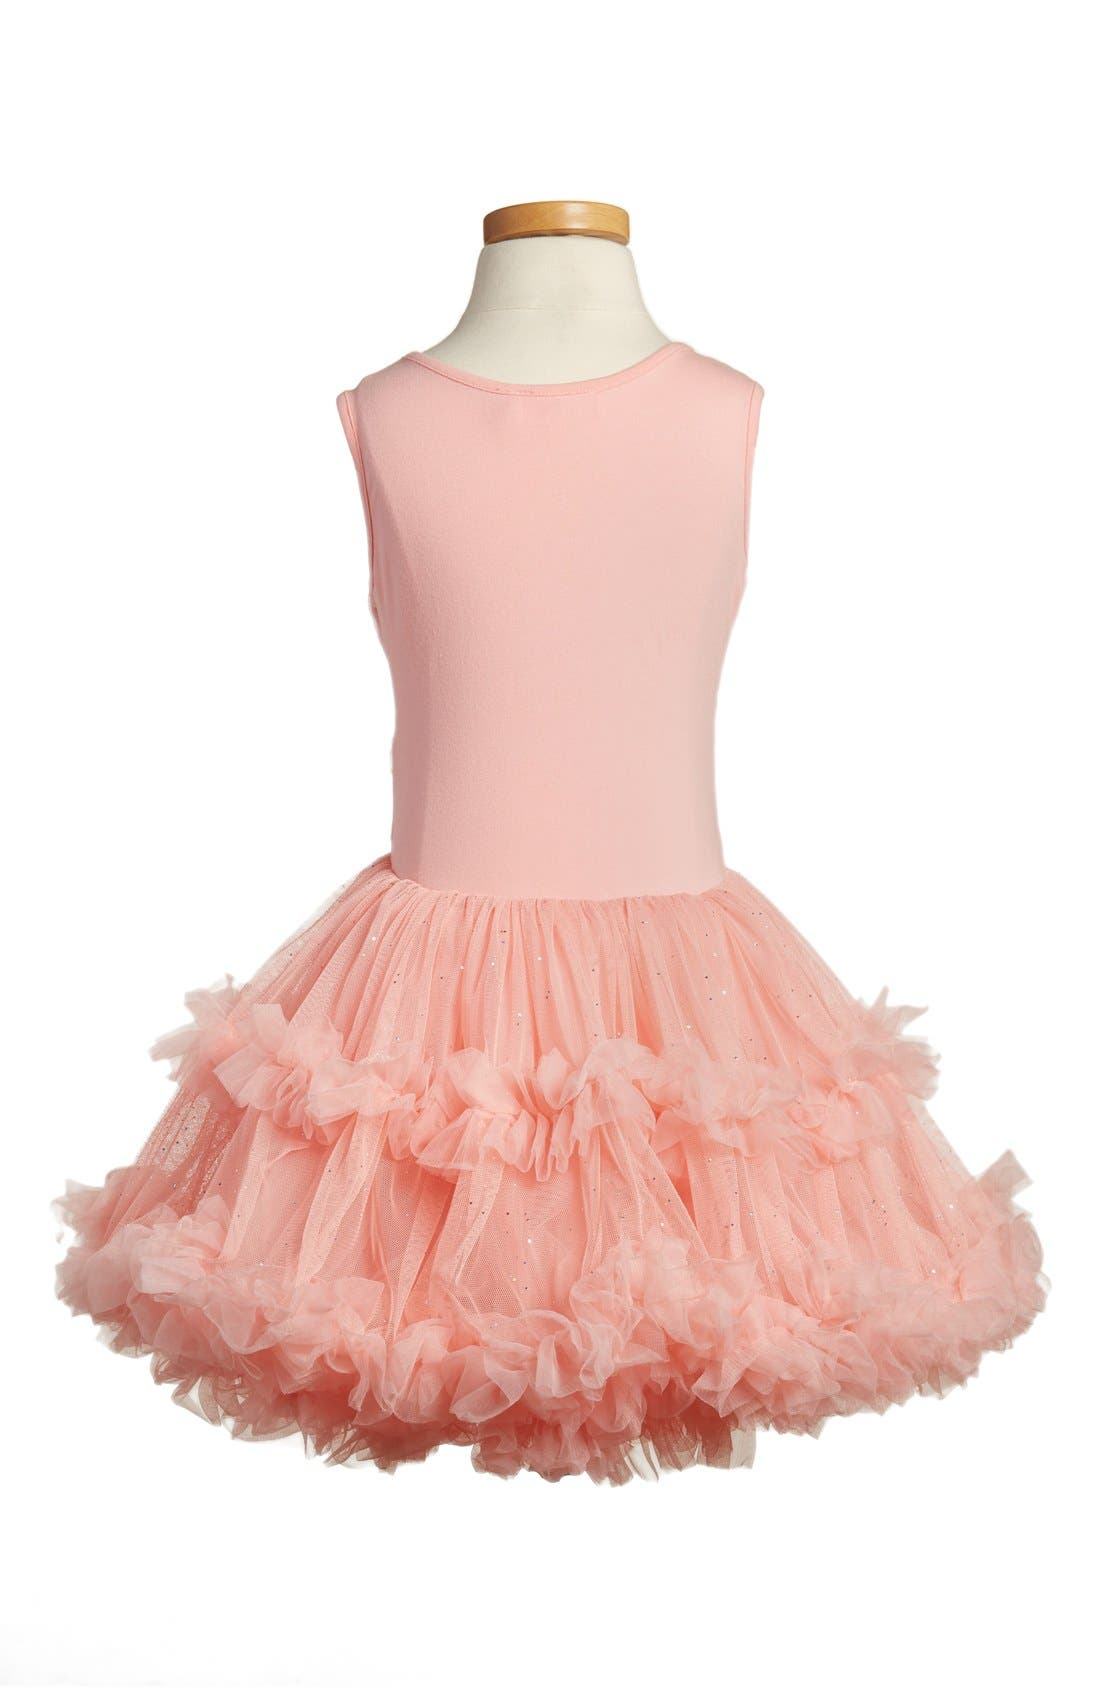 'Butterfly' Sleeveless Party Dress,                             Alternate thumbnail 2, color,                             Peach